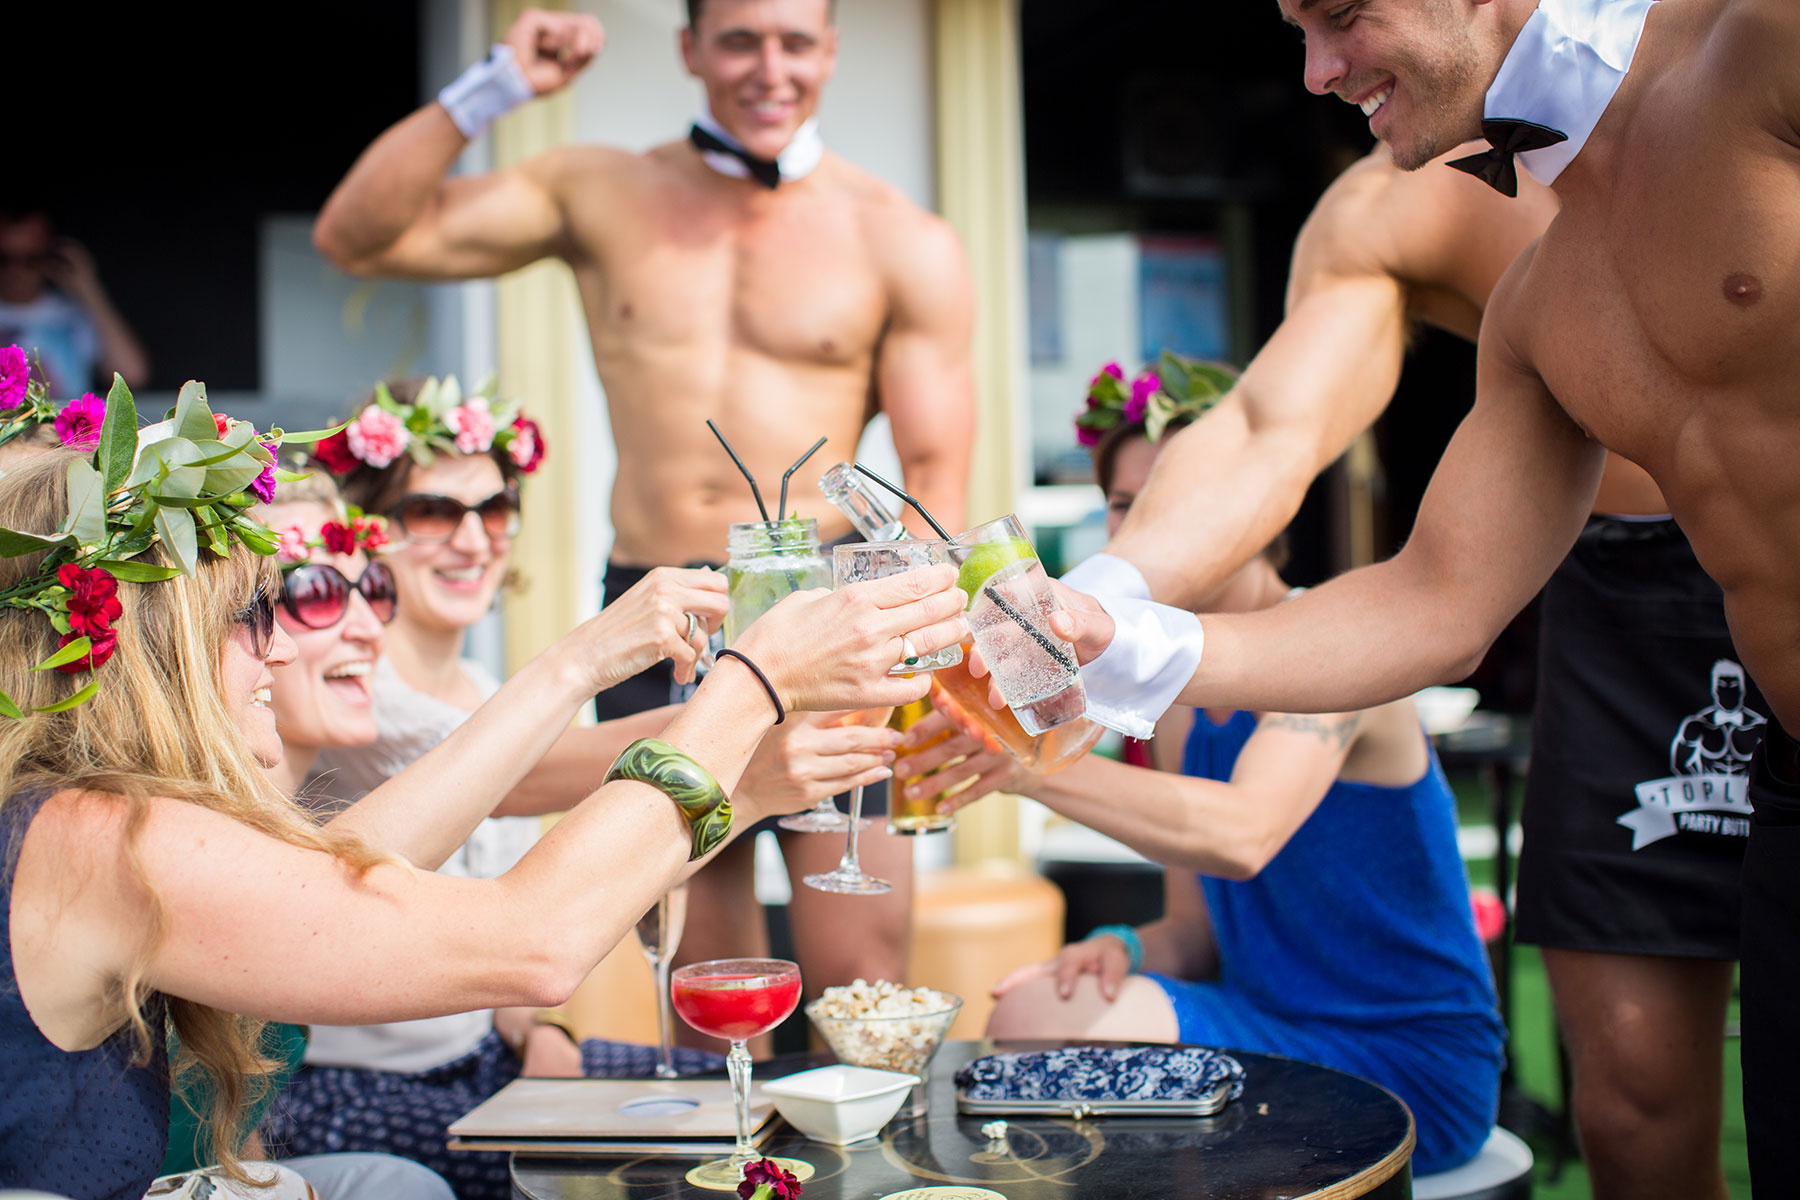 15-Party-Butlers-54.jpg